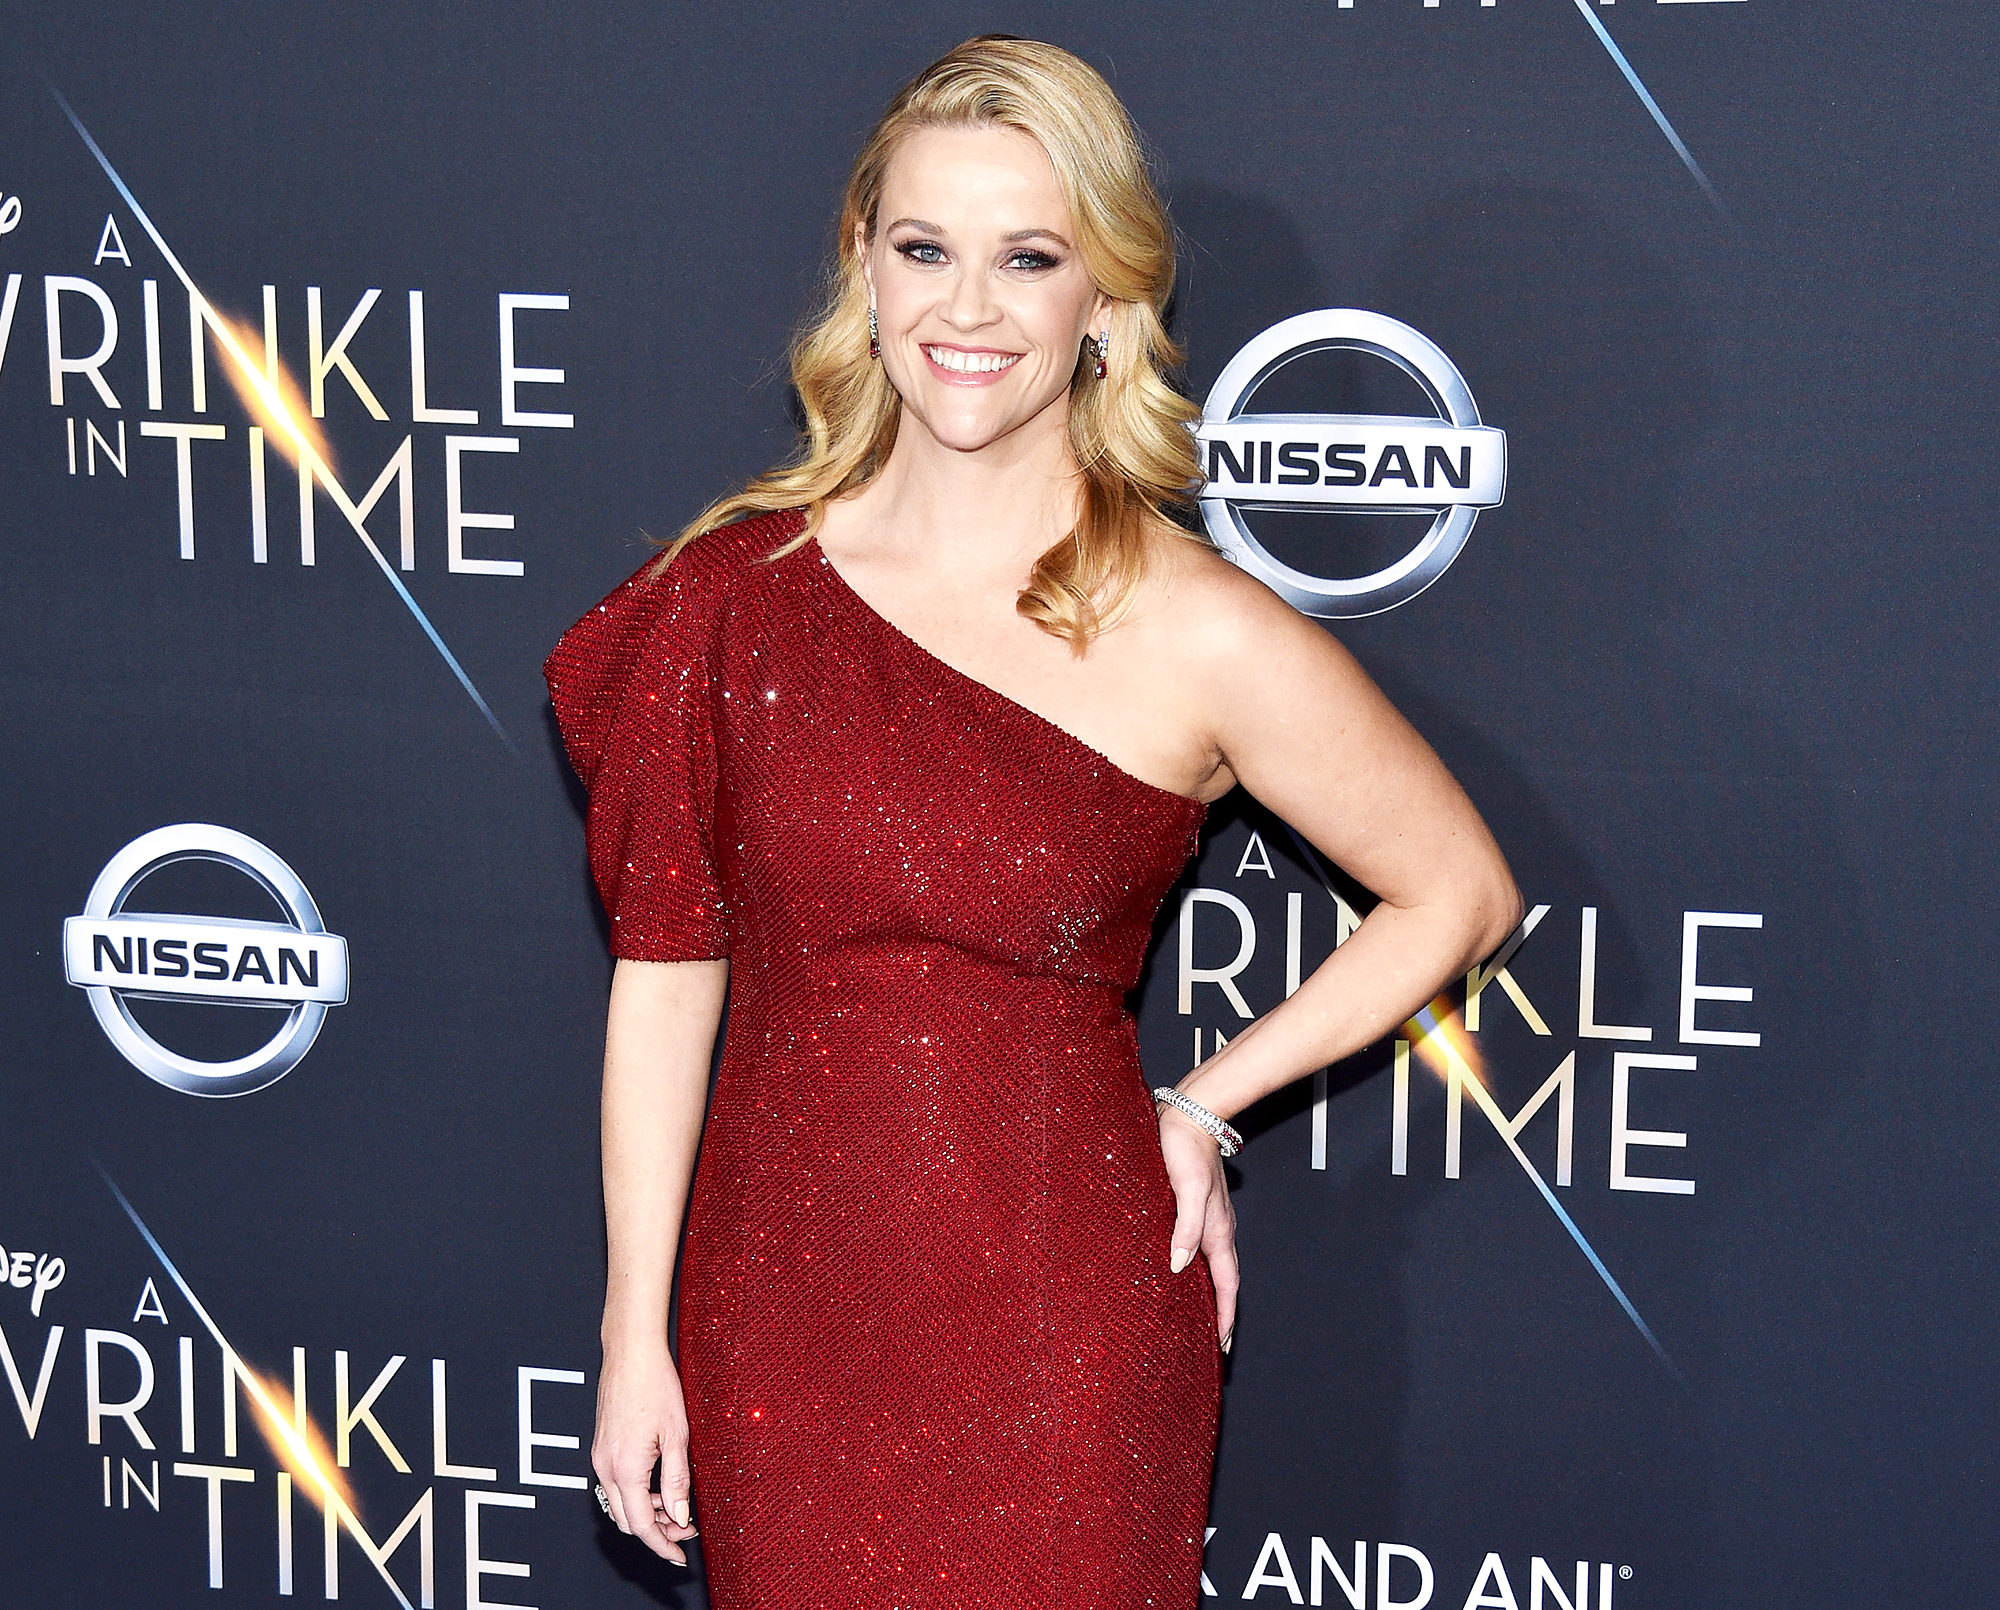 Reese Witherspoon confirms 'Legally Blonde 3' in pink bikini